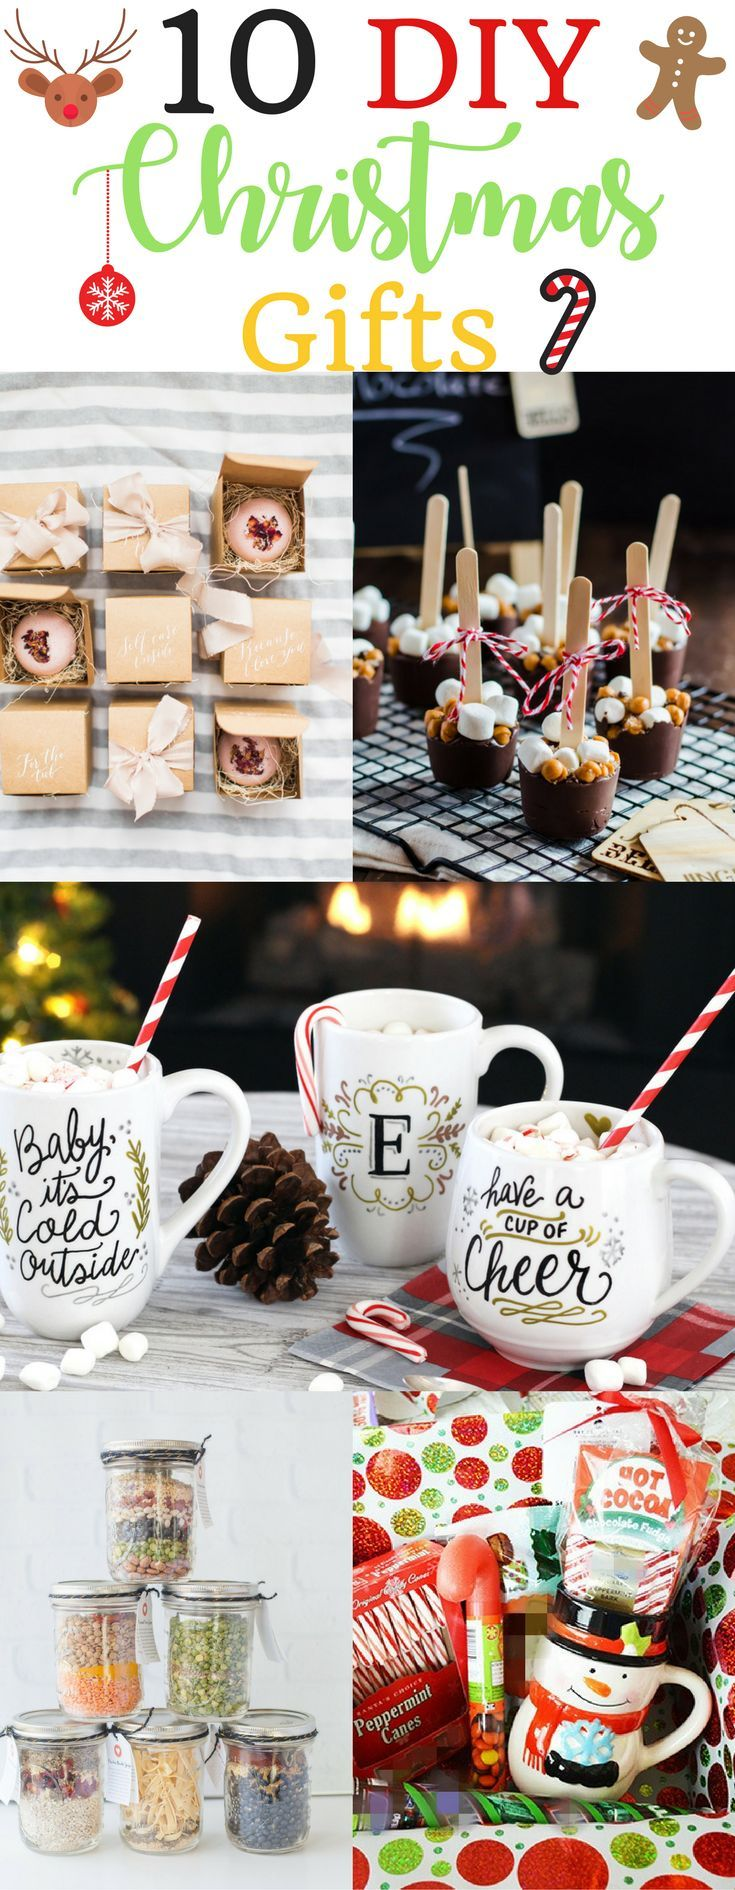 Get creative making your gifts this year. Holiday christmas diy gifts easy cheap dollar store homemade basket jars